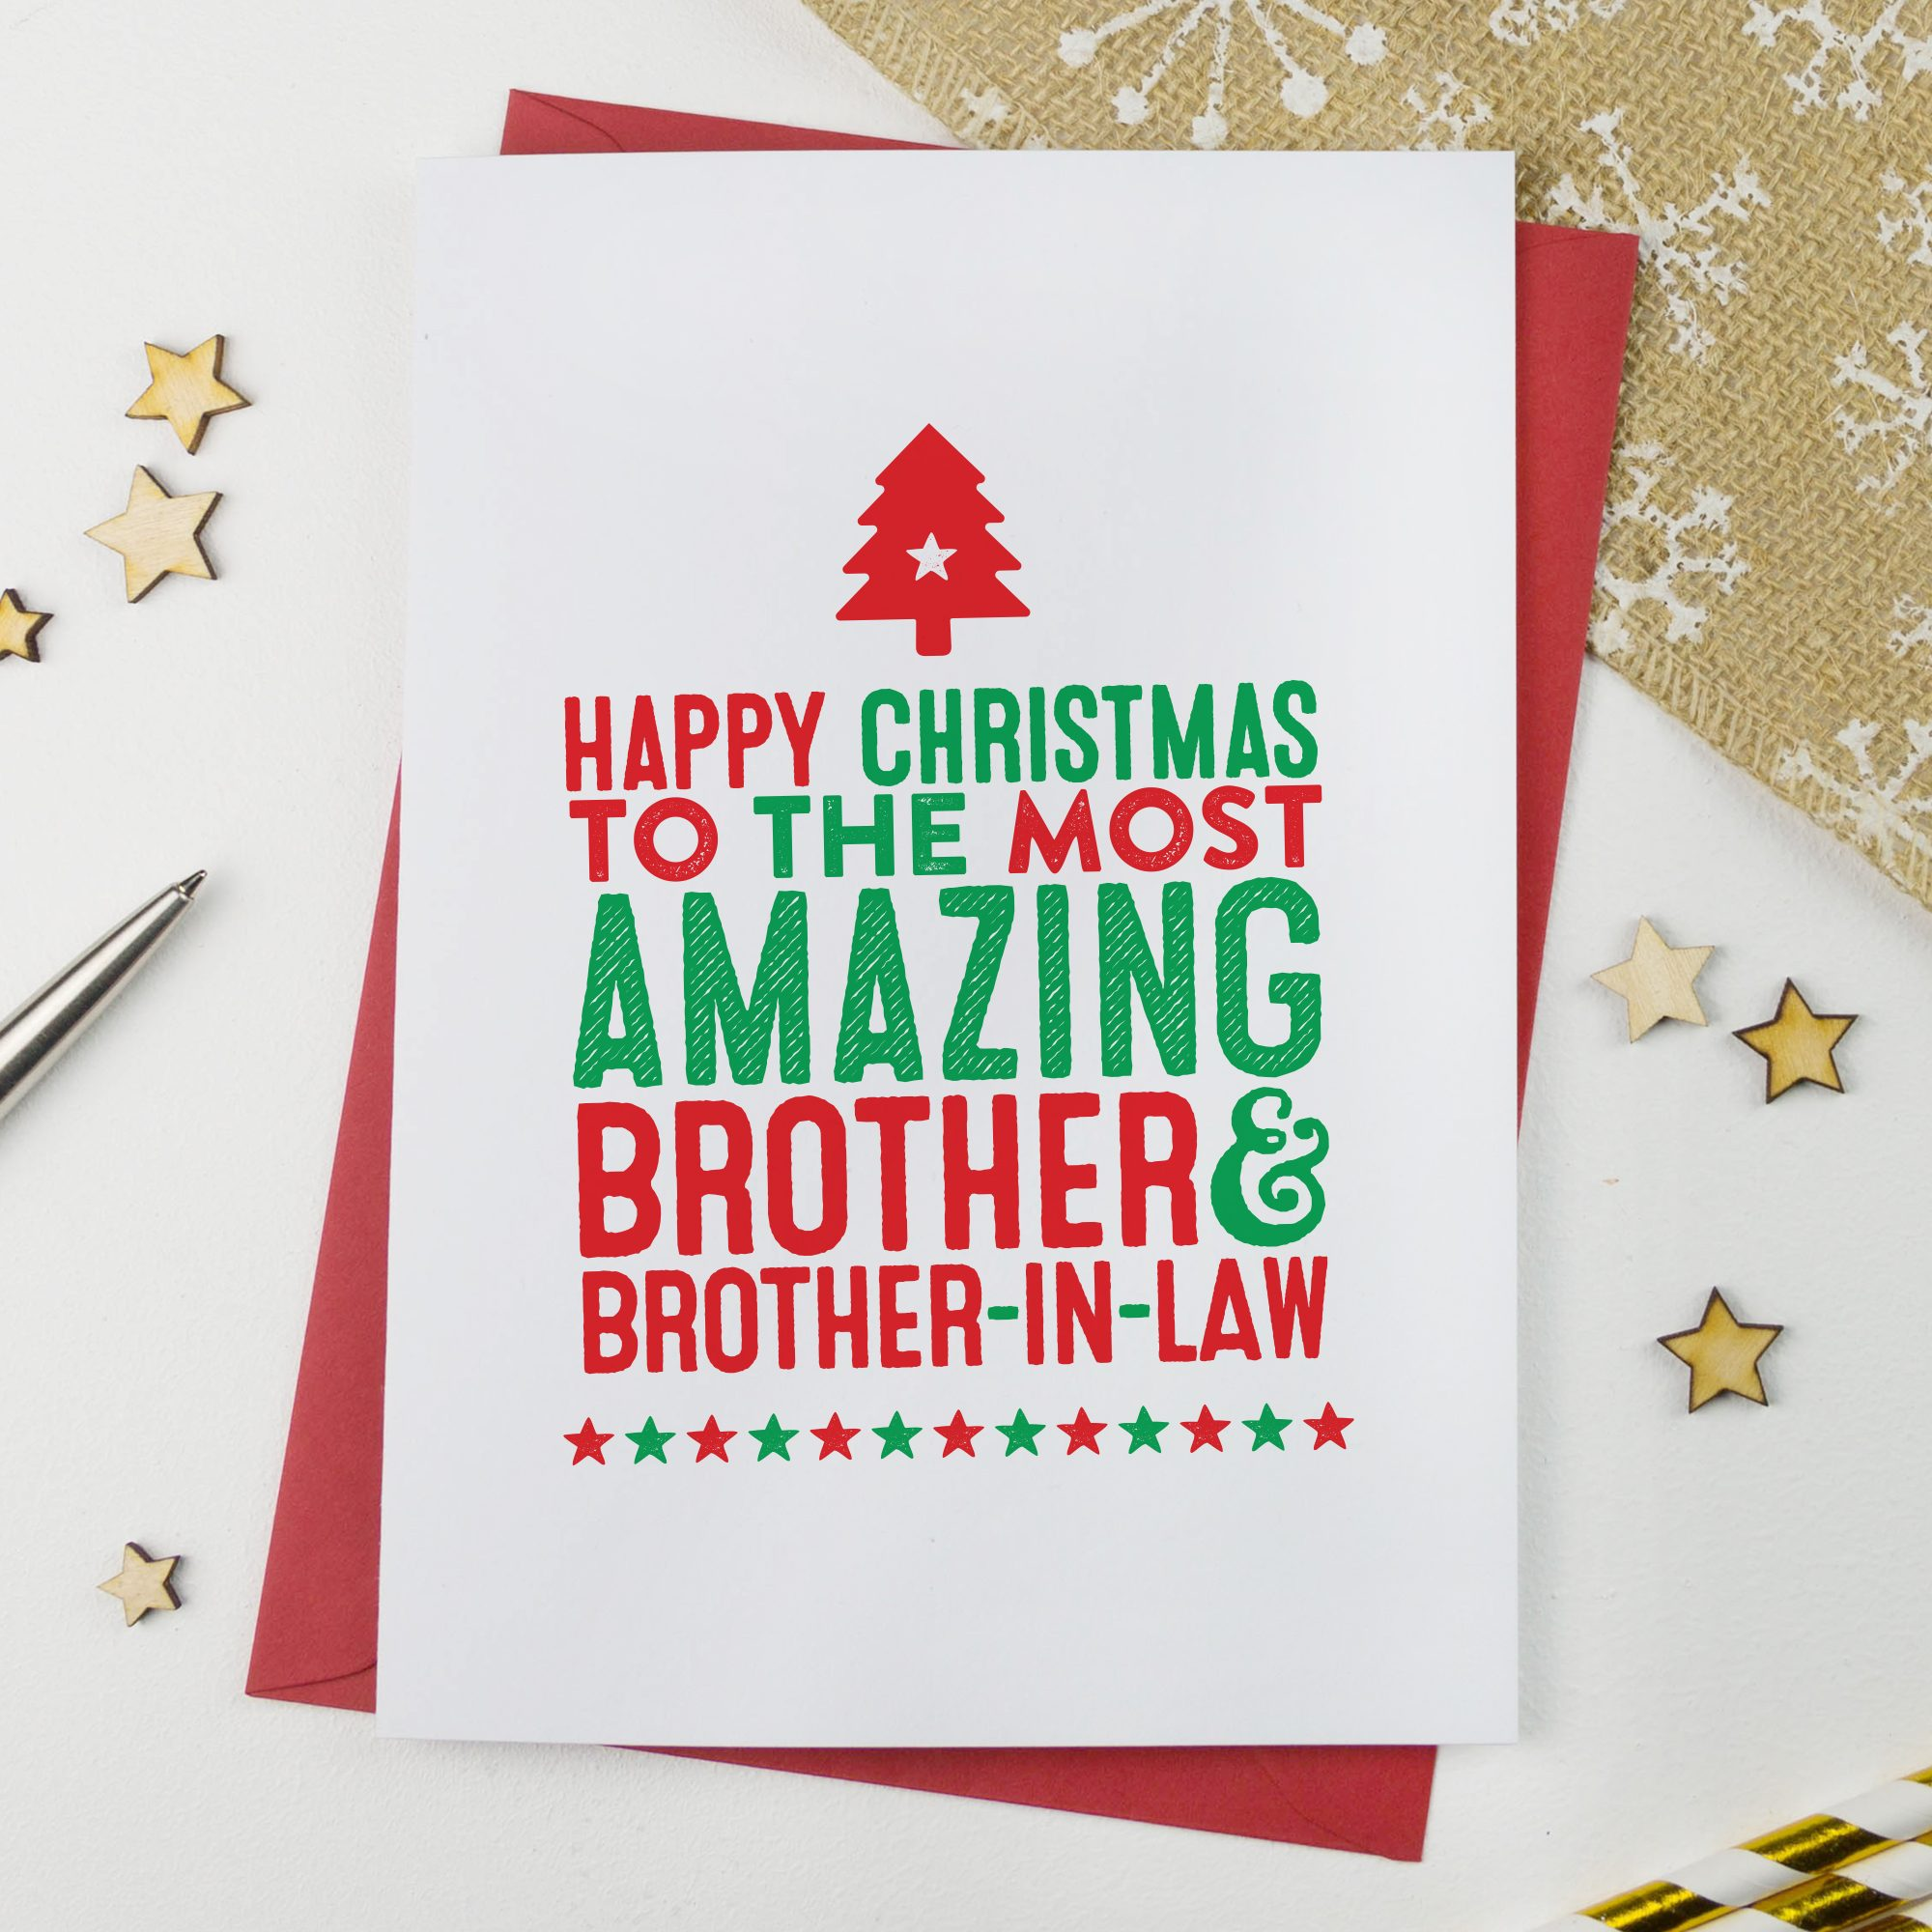 Amazing Brother & Brother in Law Christmas Card